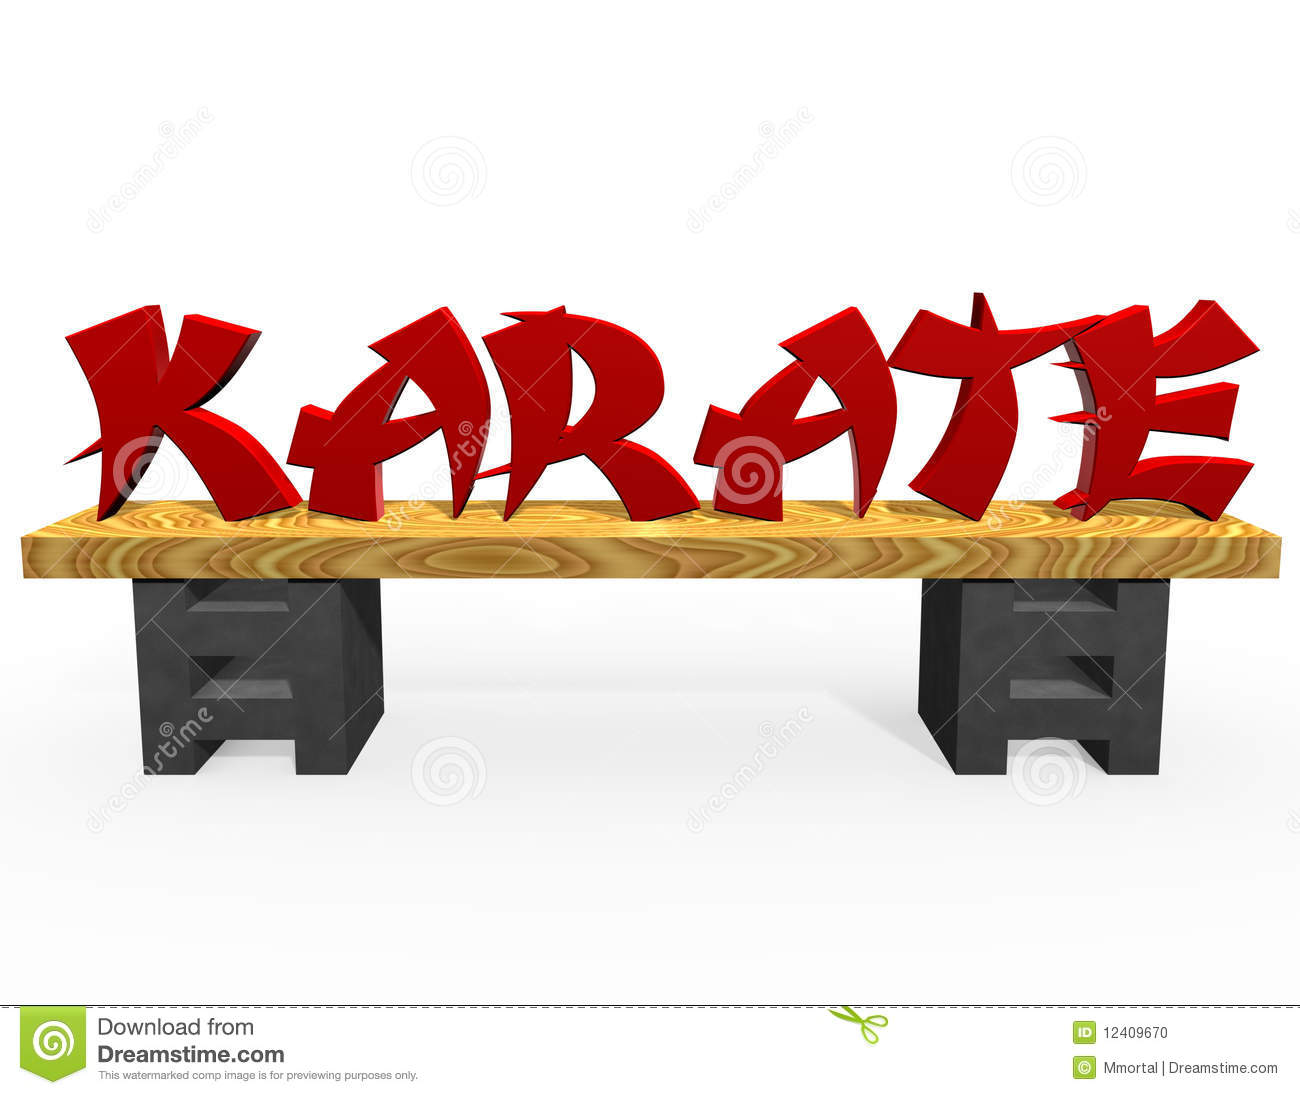 Red Karate Text Stock Photo Image 12409670